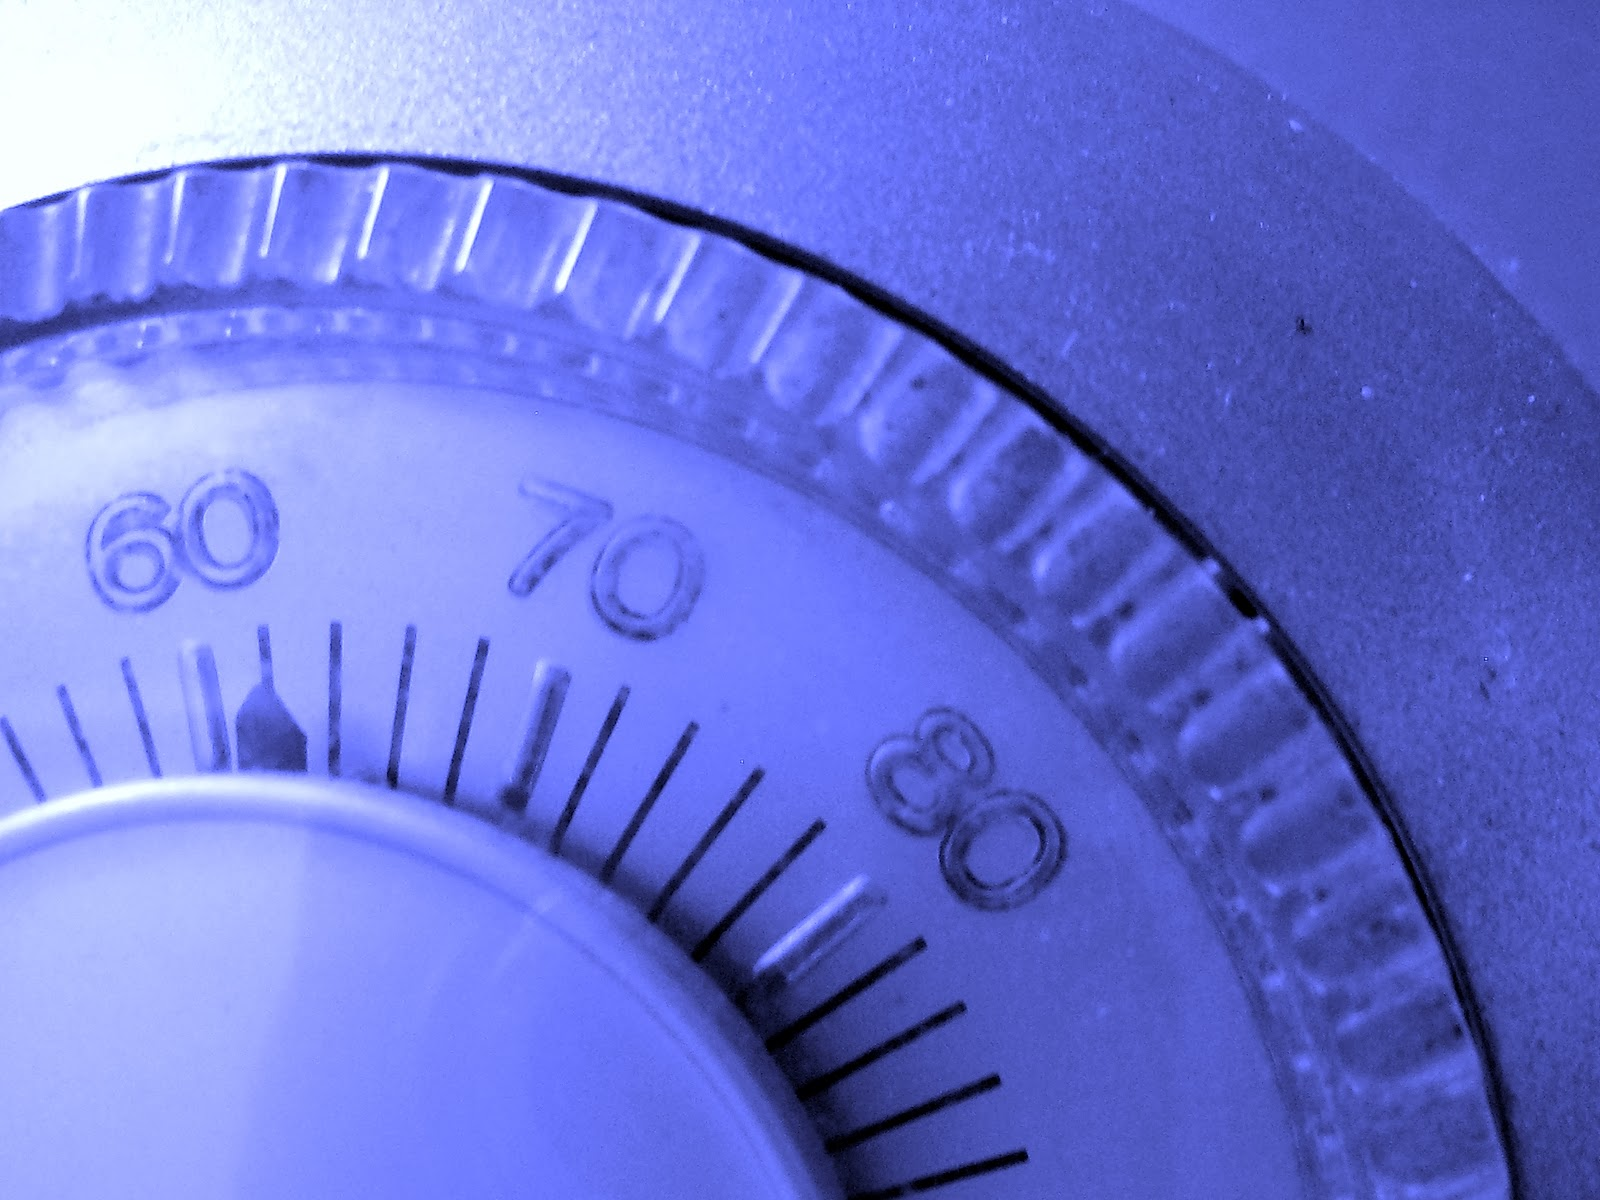 Programmable thermostats have the potential to save money with accuracy